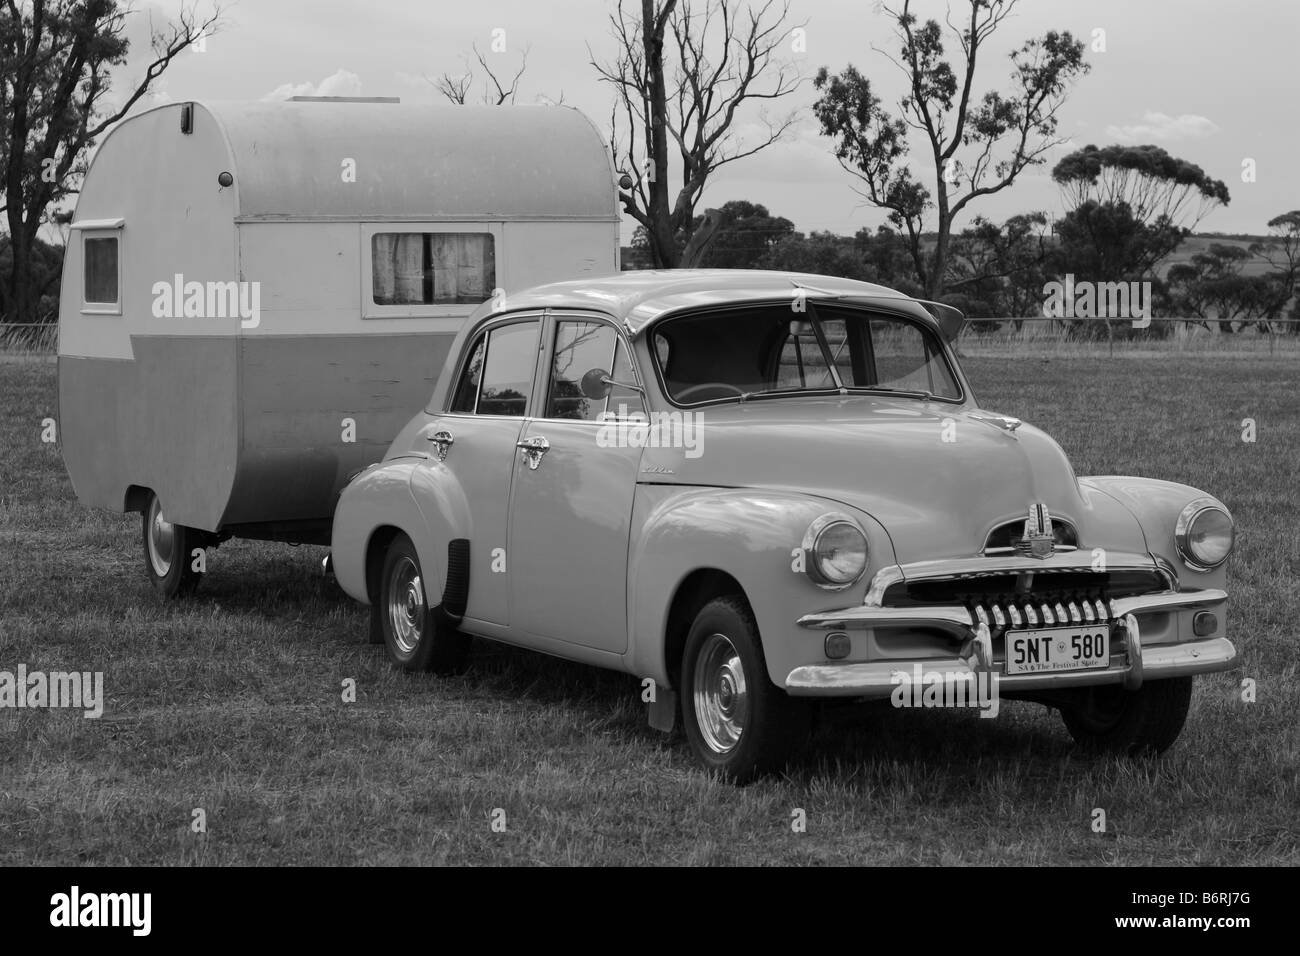 old car and old caravan connected together in a field in south Australia, Australia - Stock Image